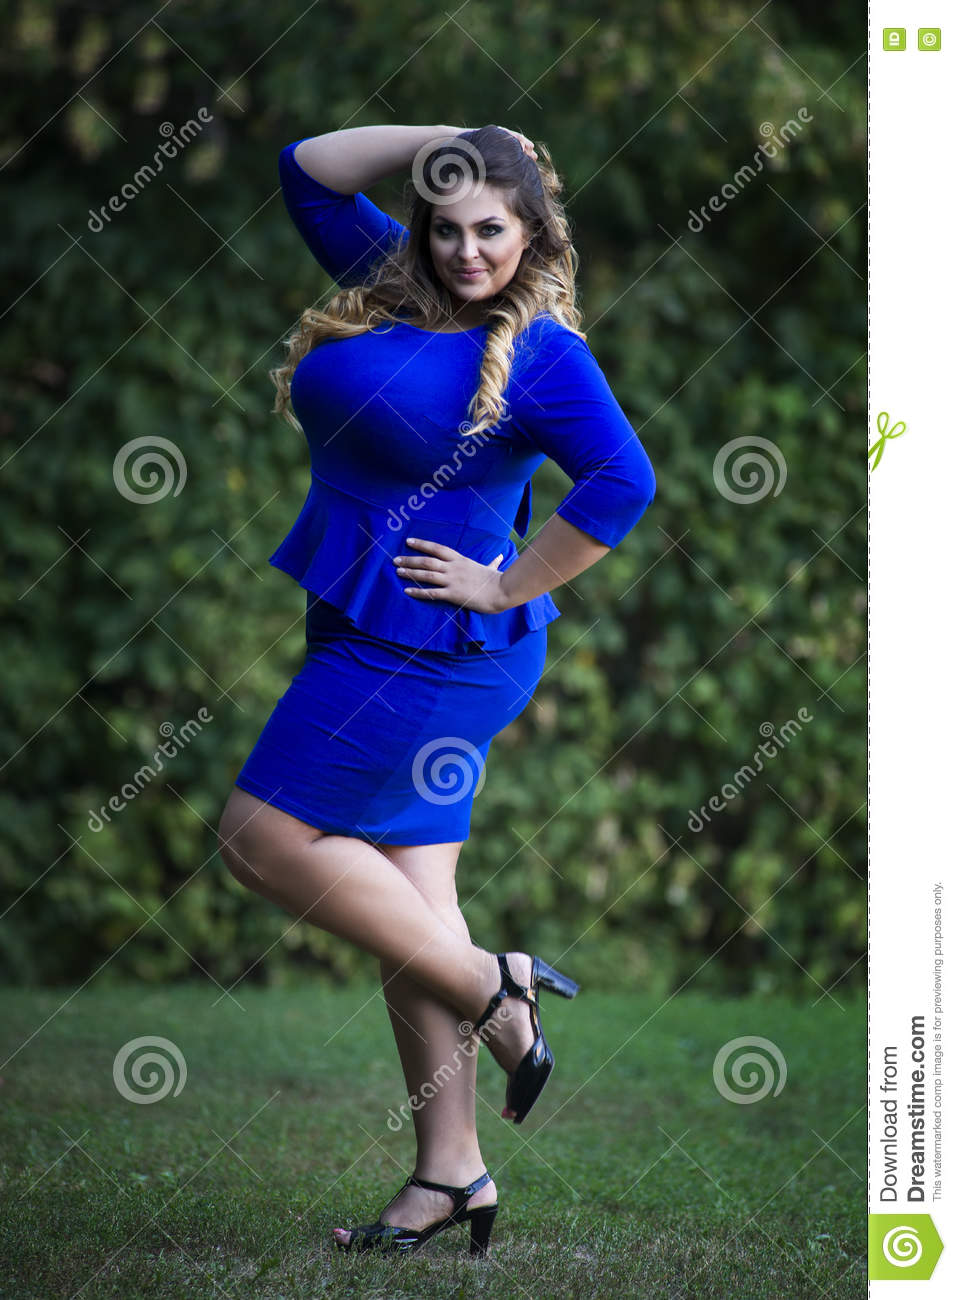 blue island bbw personals Large friends is the online bbw dating / plus size dating site with bbw dating personals for the bbw (big beautiful women), bhm (big handsome men) and the.